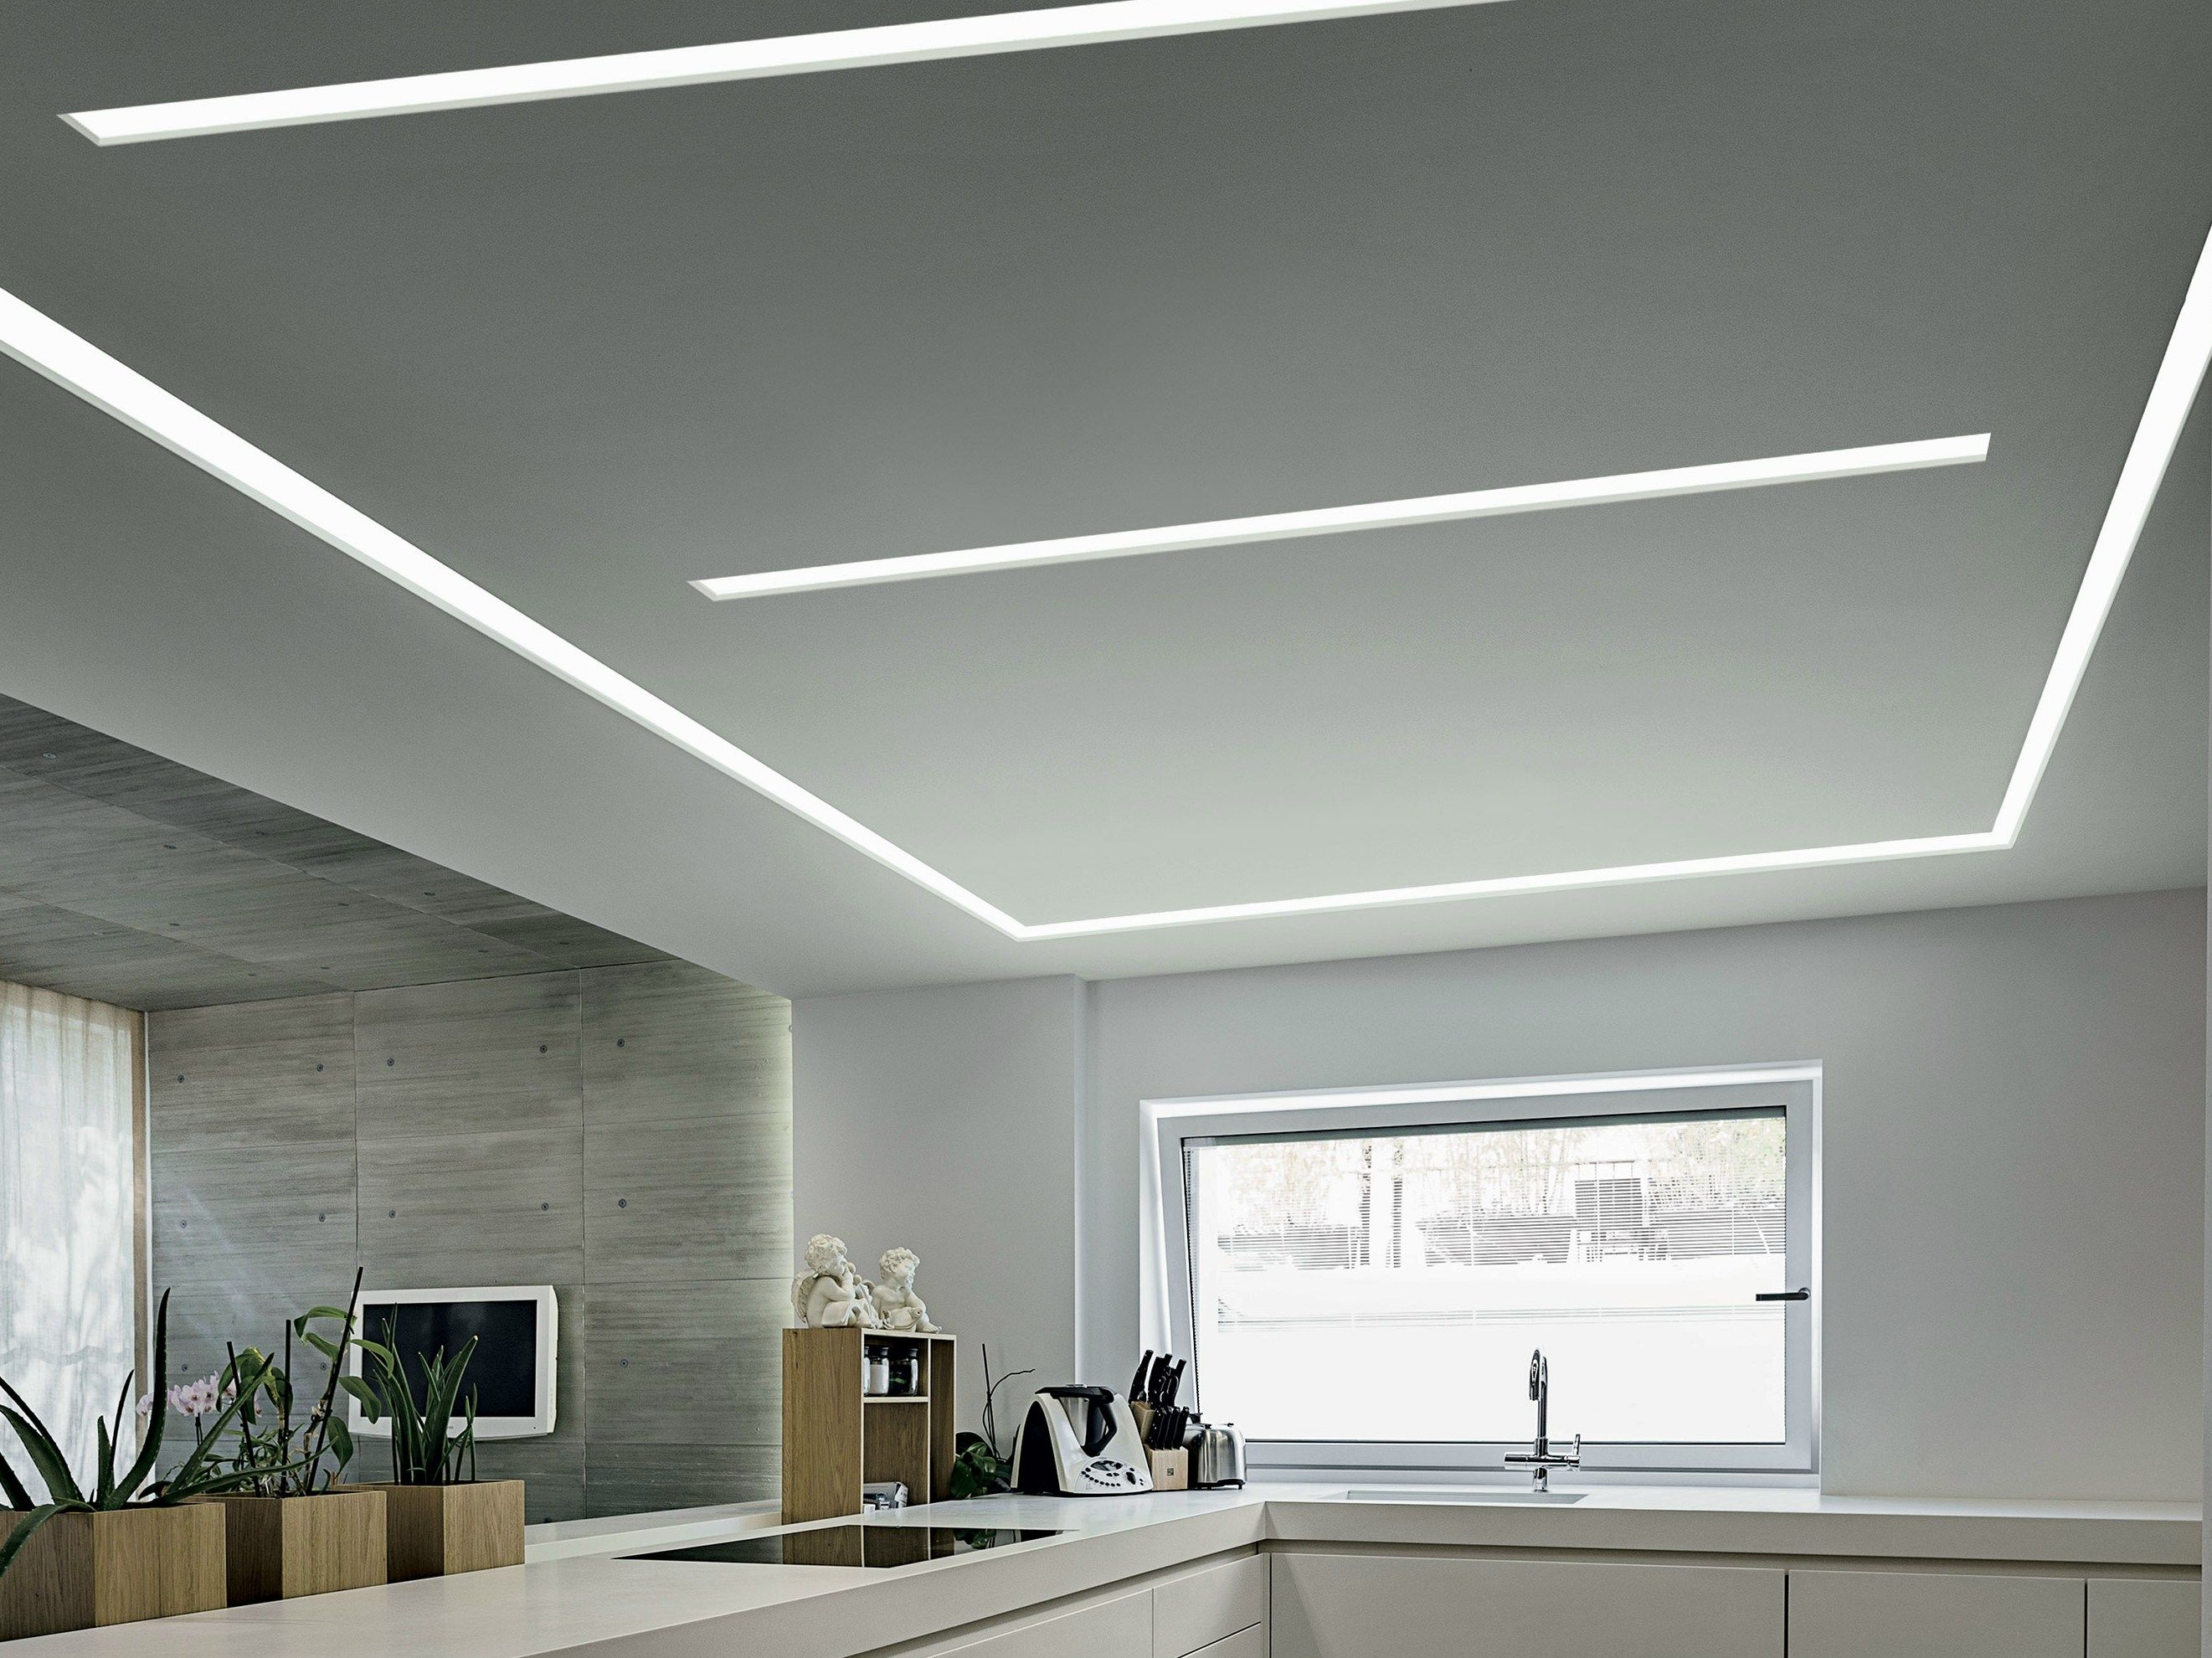 Modular linear builtin led module FYLO DIRECT by Linea